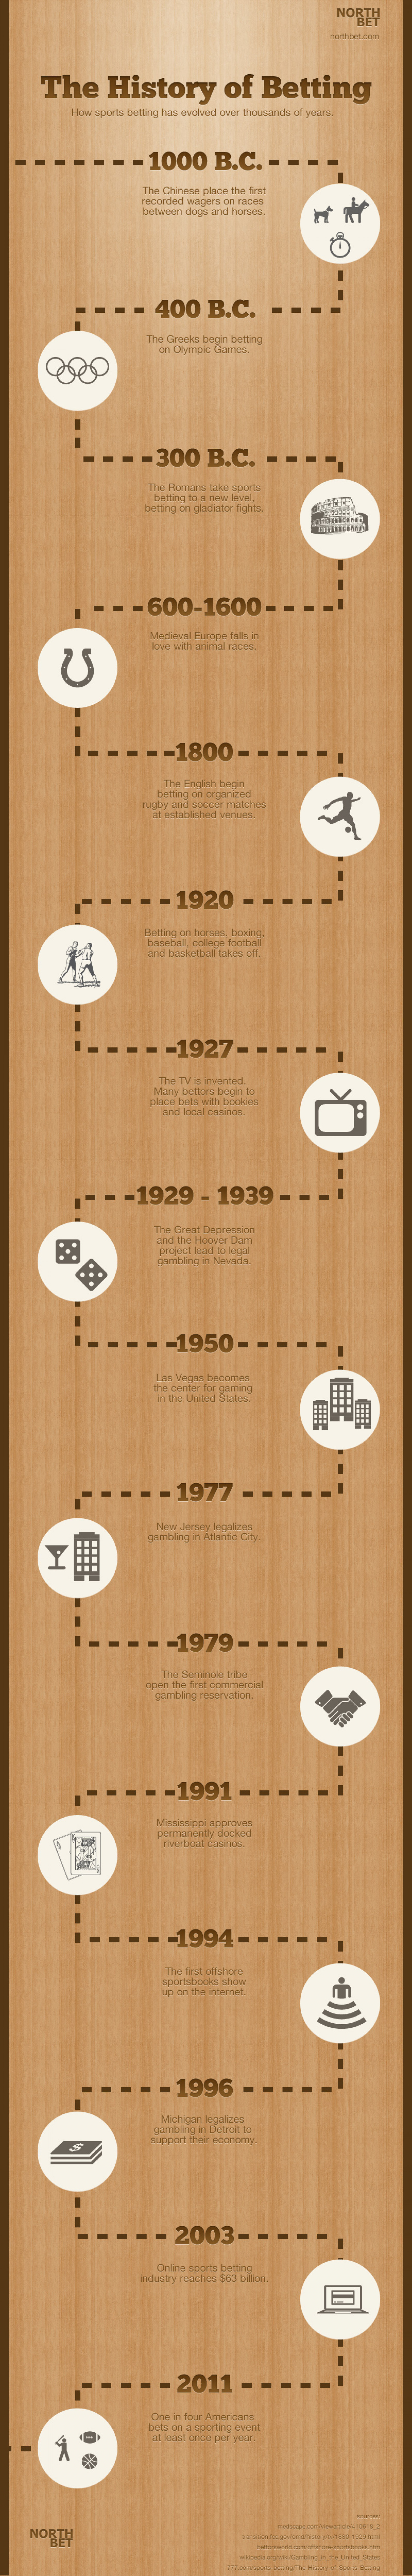 The History Of Betting Infographic